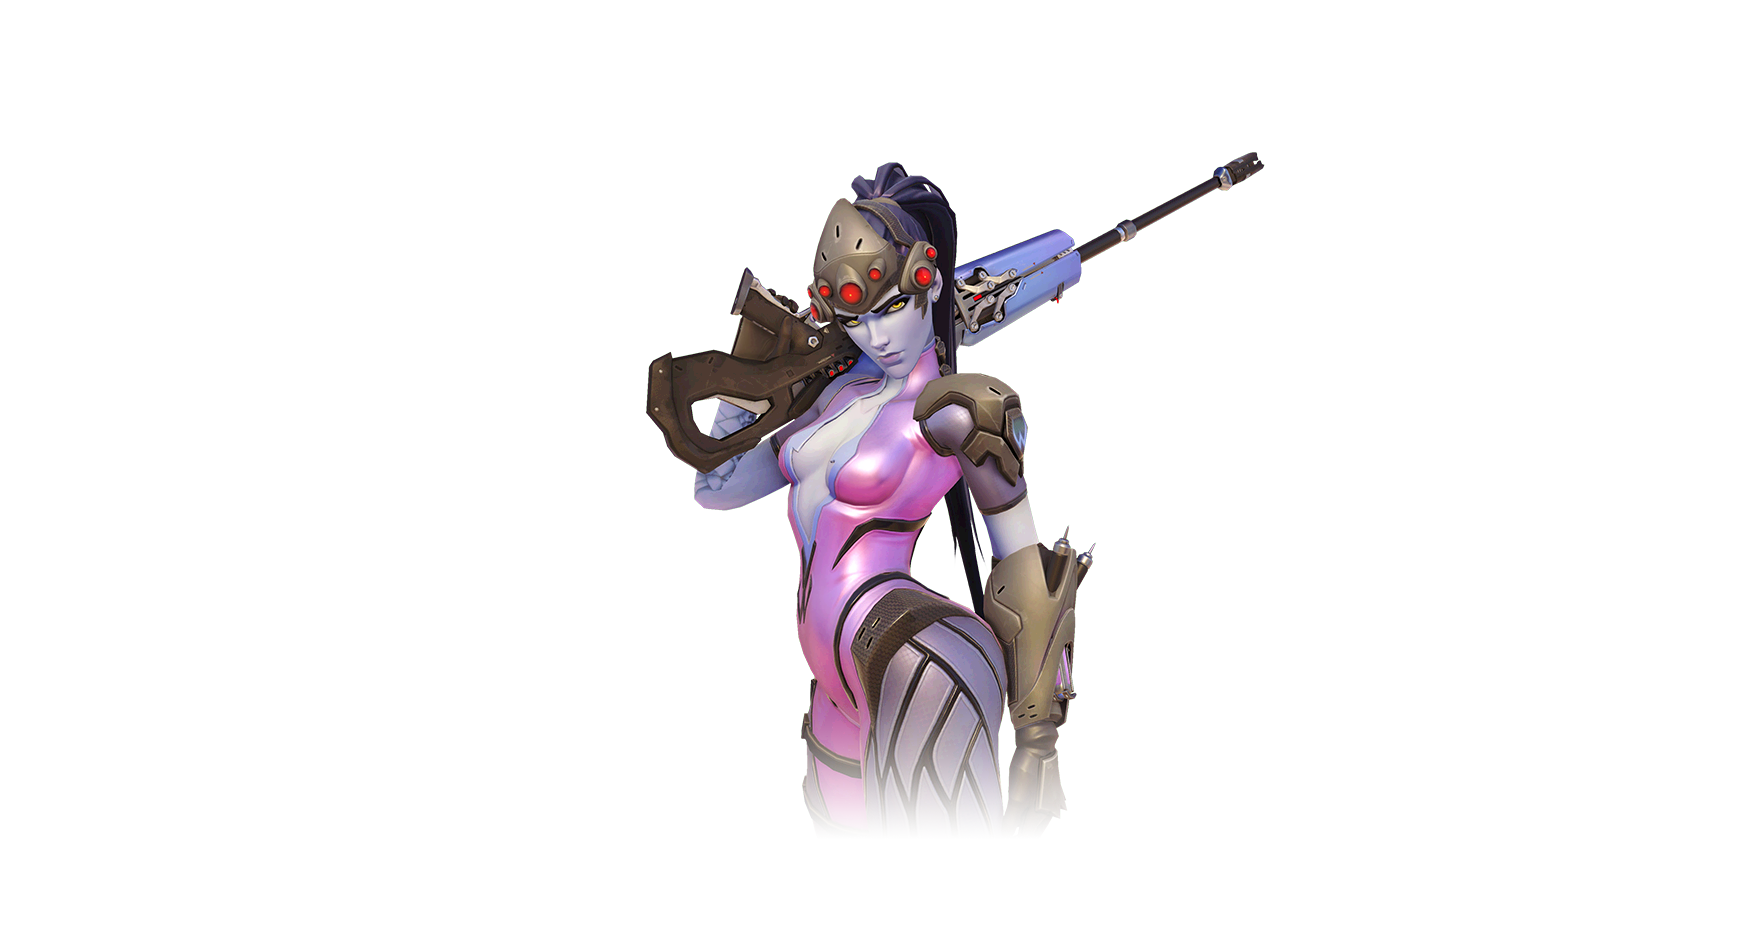 Characters background album on. Overwatch transparent png